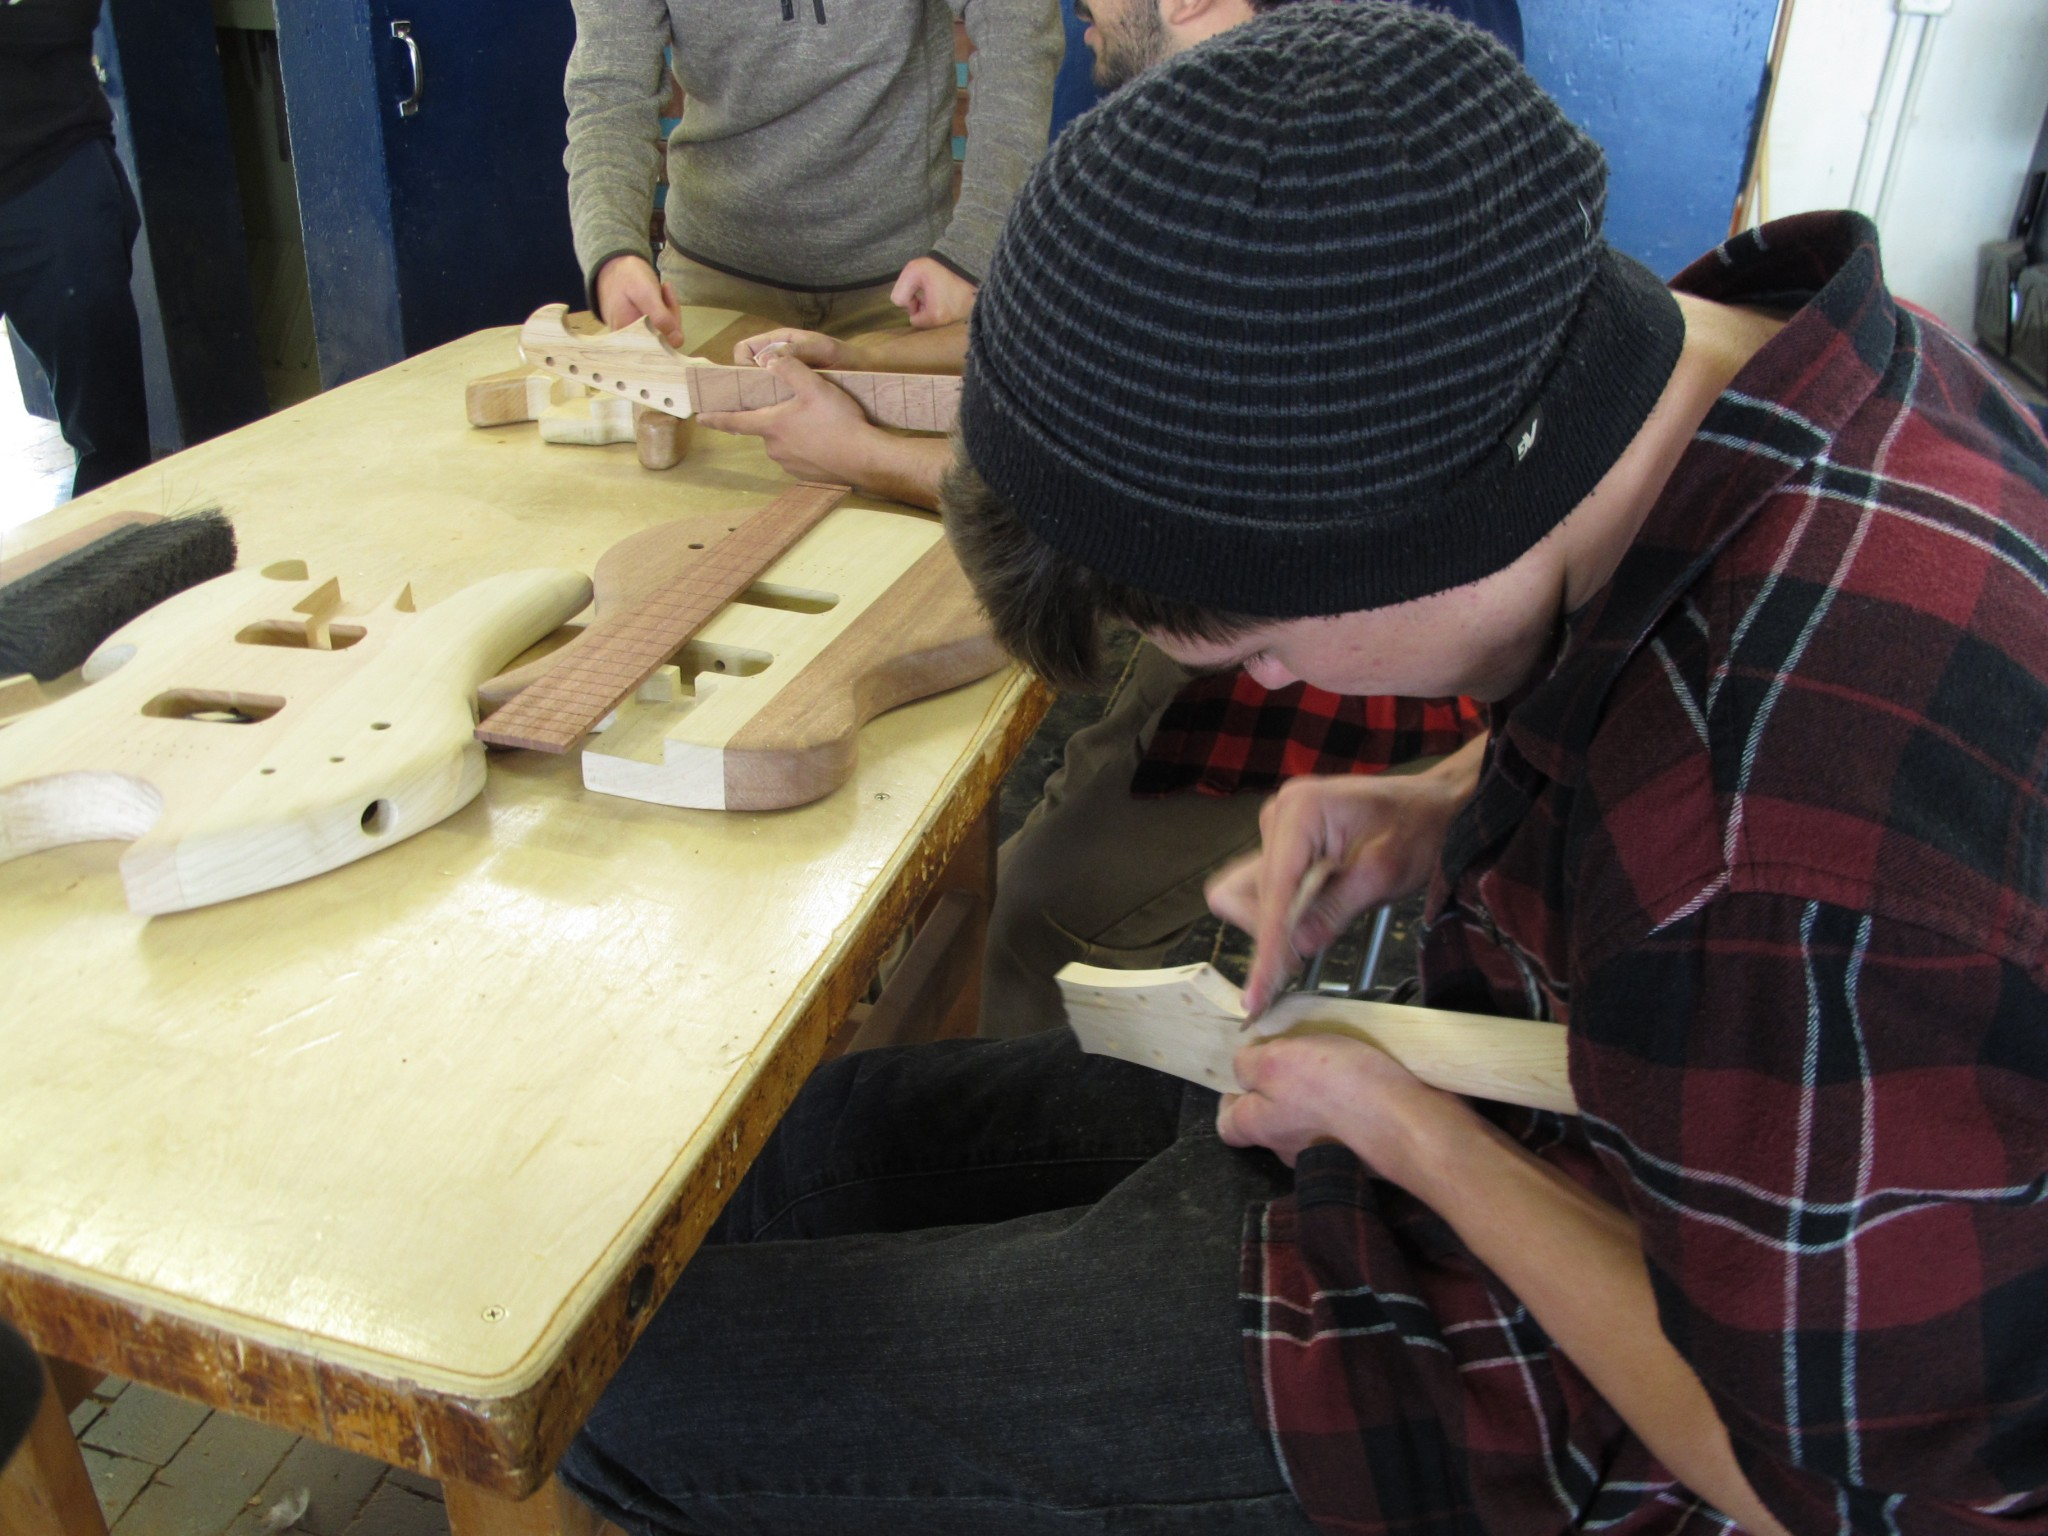 Student Cameron Shirley says sanding has been the biggest challenge of making his guitar in the STEM Guitar Project at Camarillo High School.